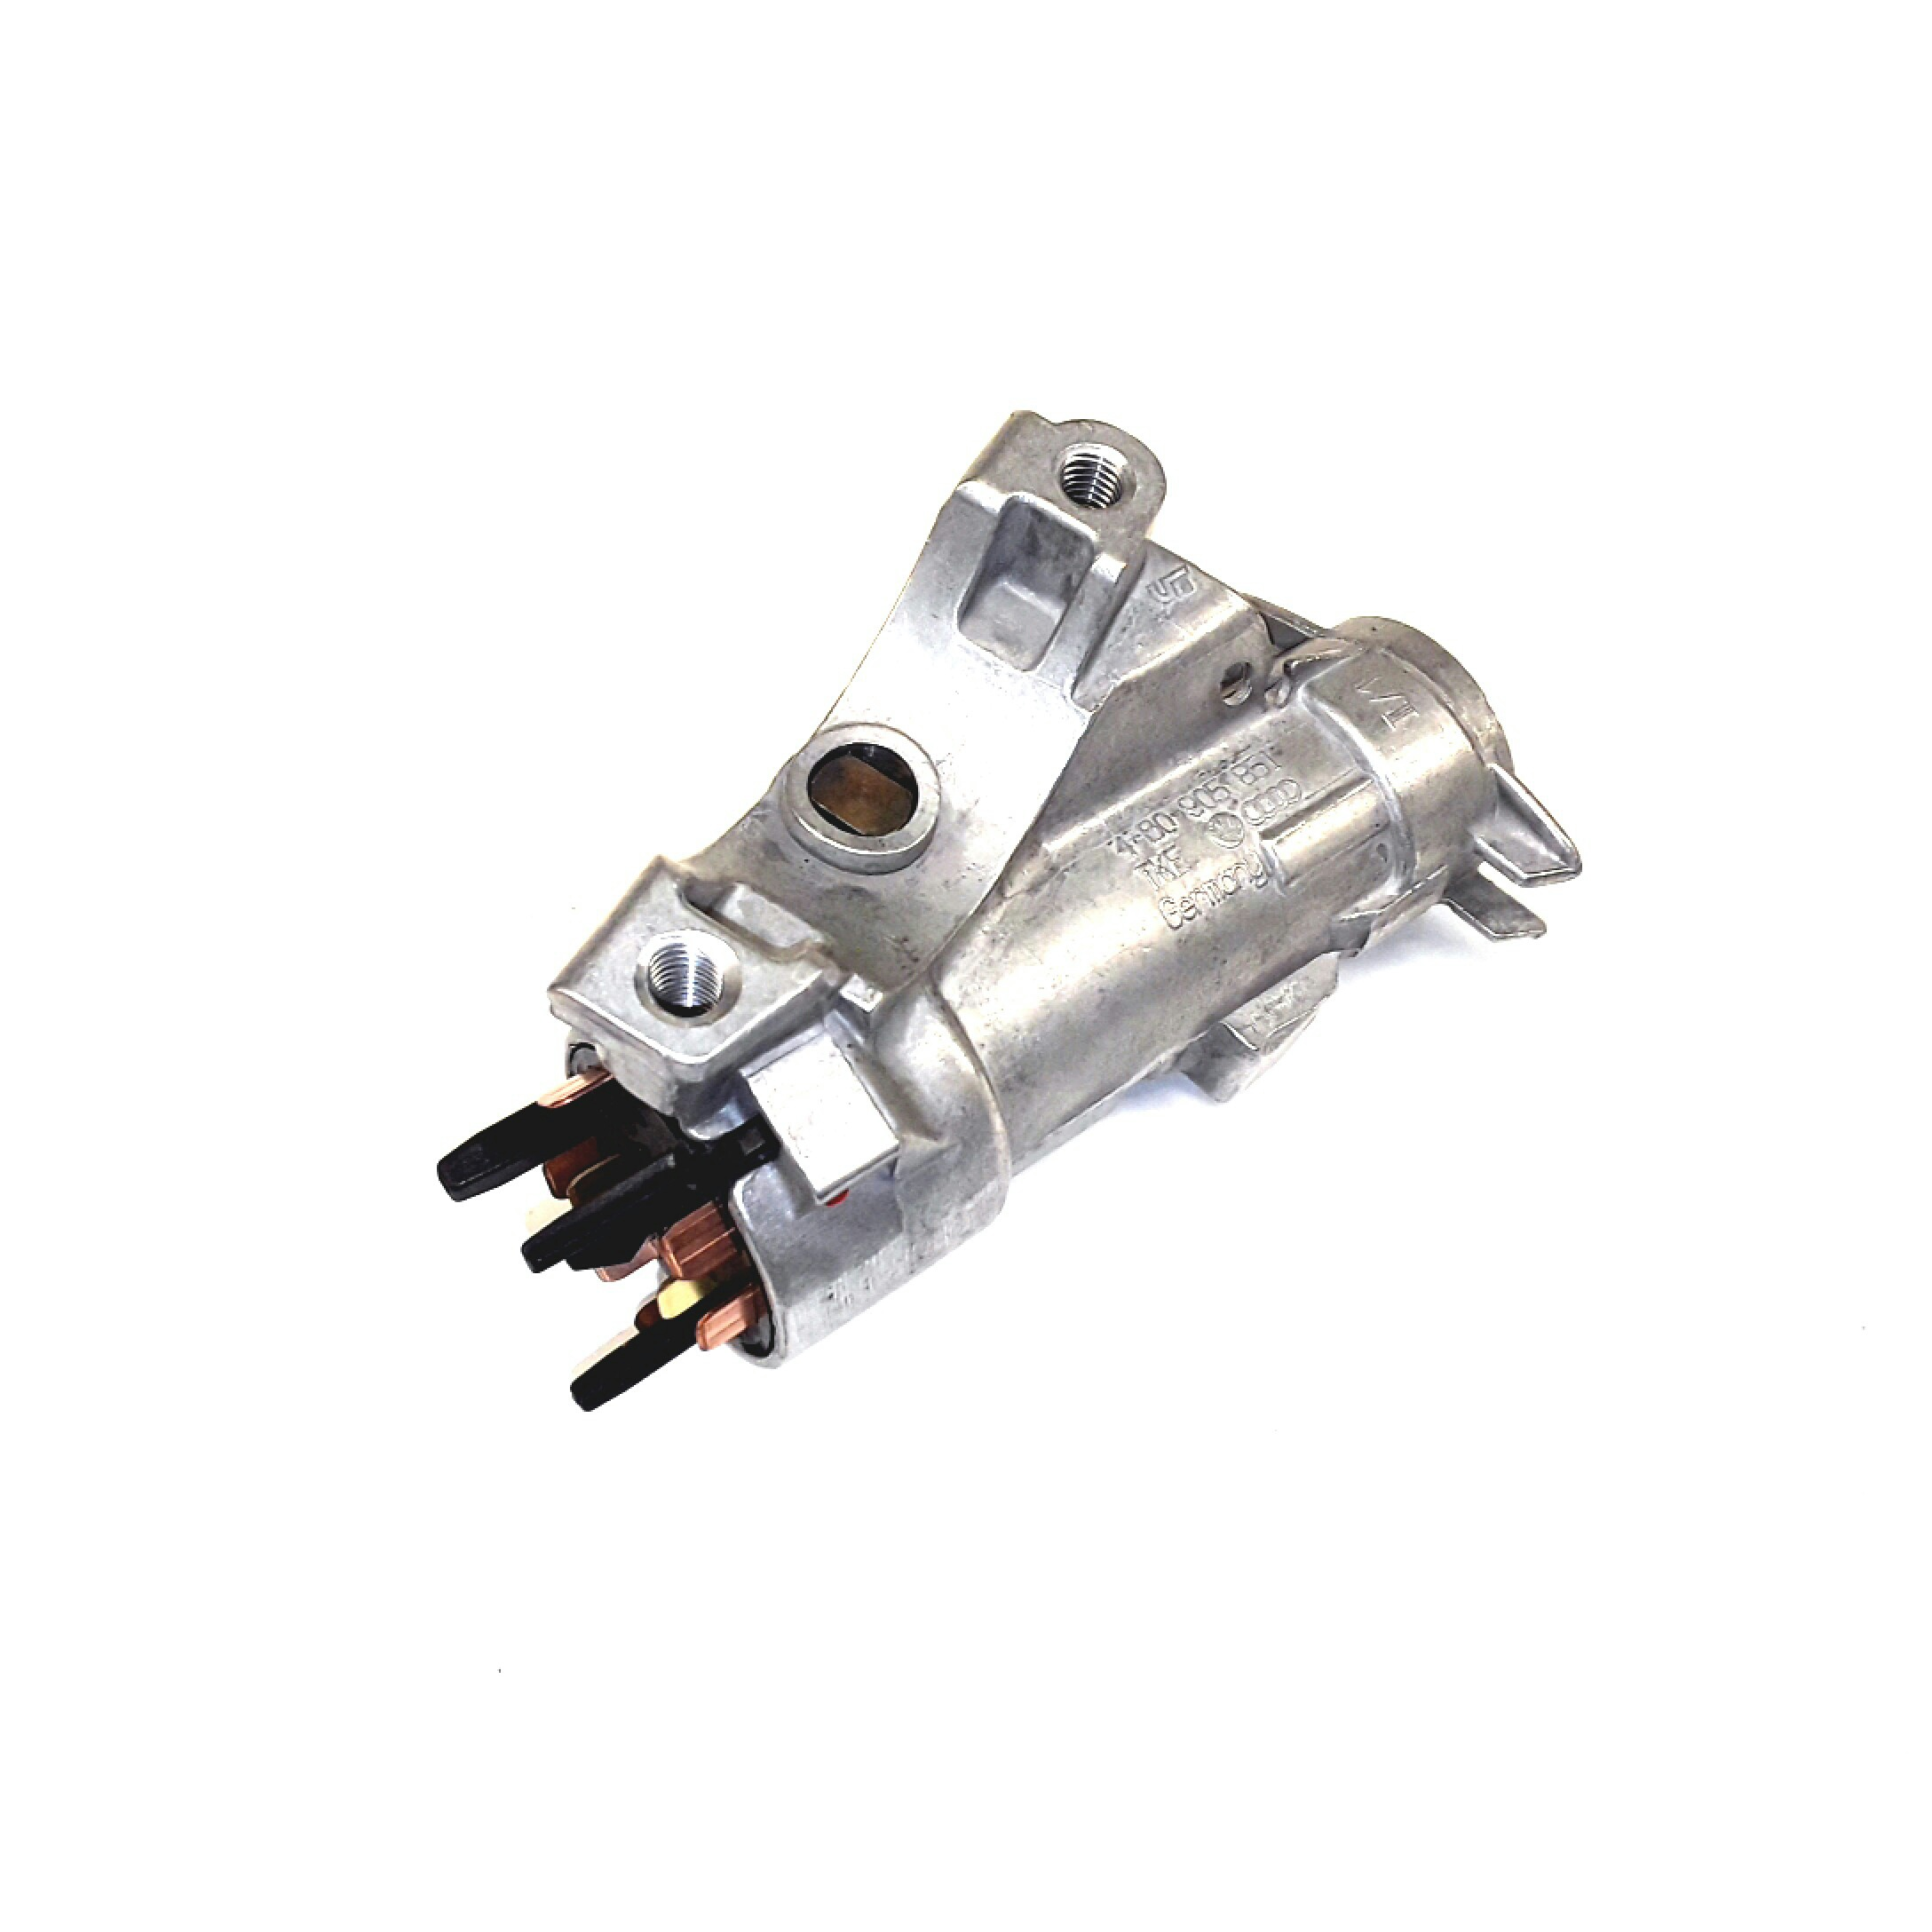 Volkswagen Passat Lock  Housing  Steering  Column  Ignition  A4  S4  Rs4  Auto Trans  A4  S4